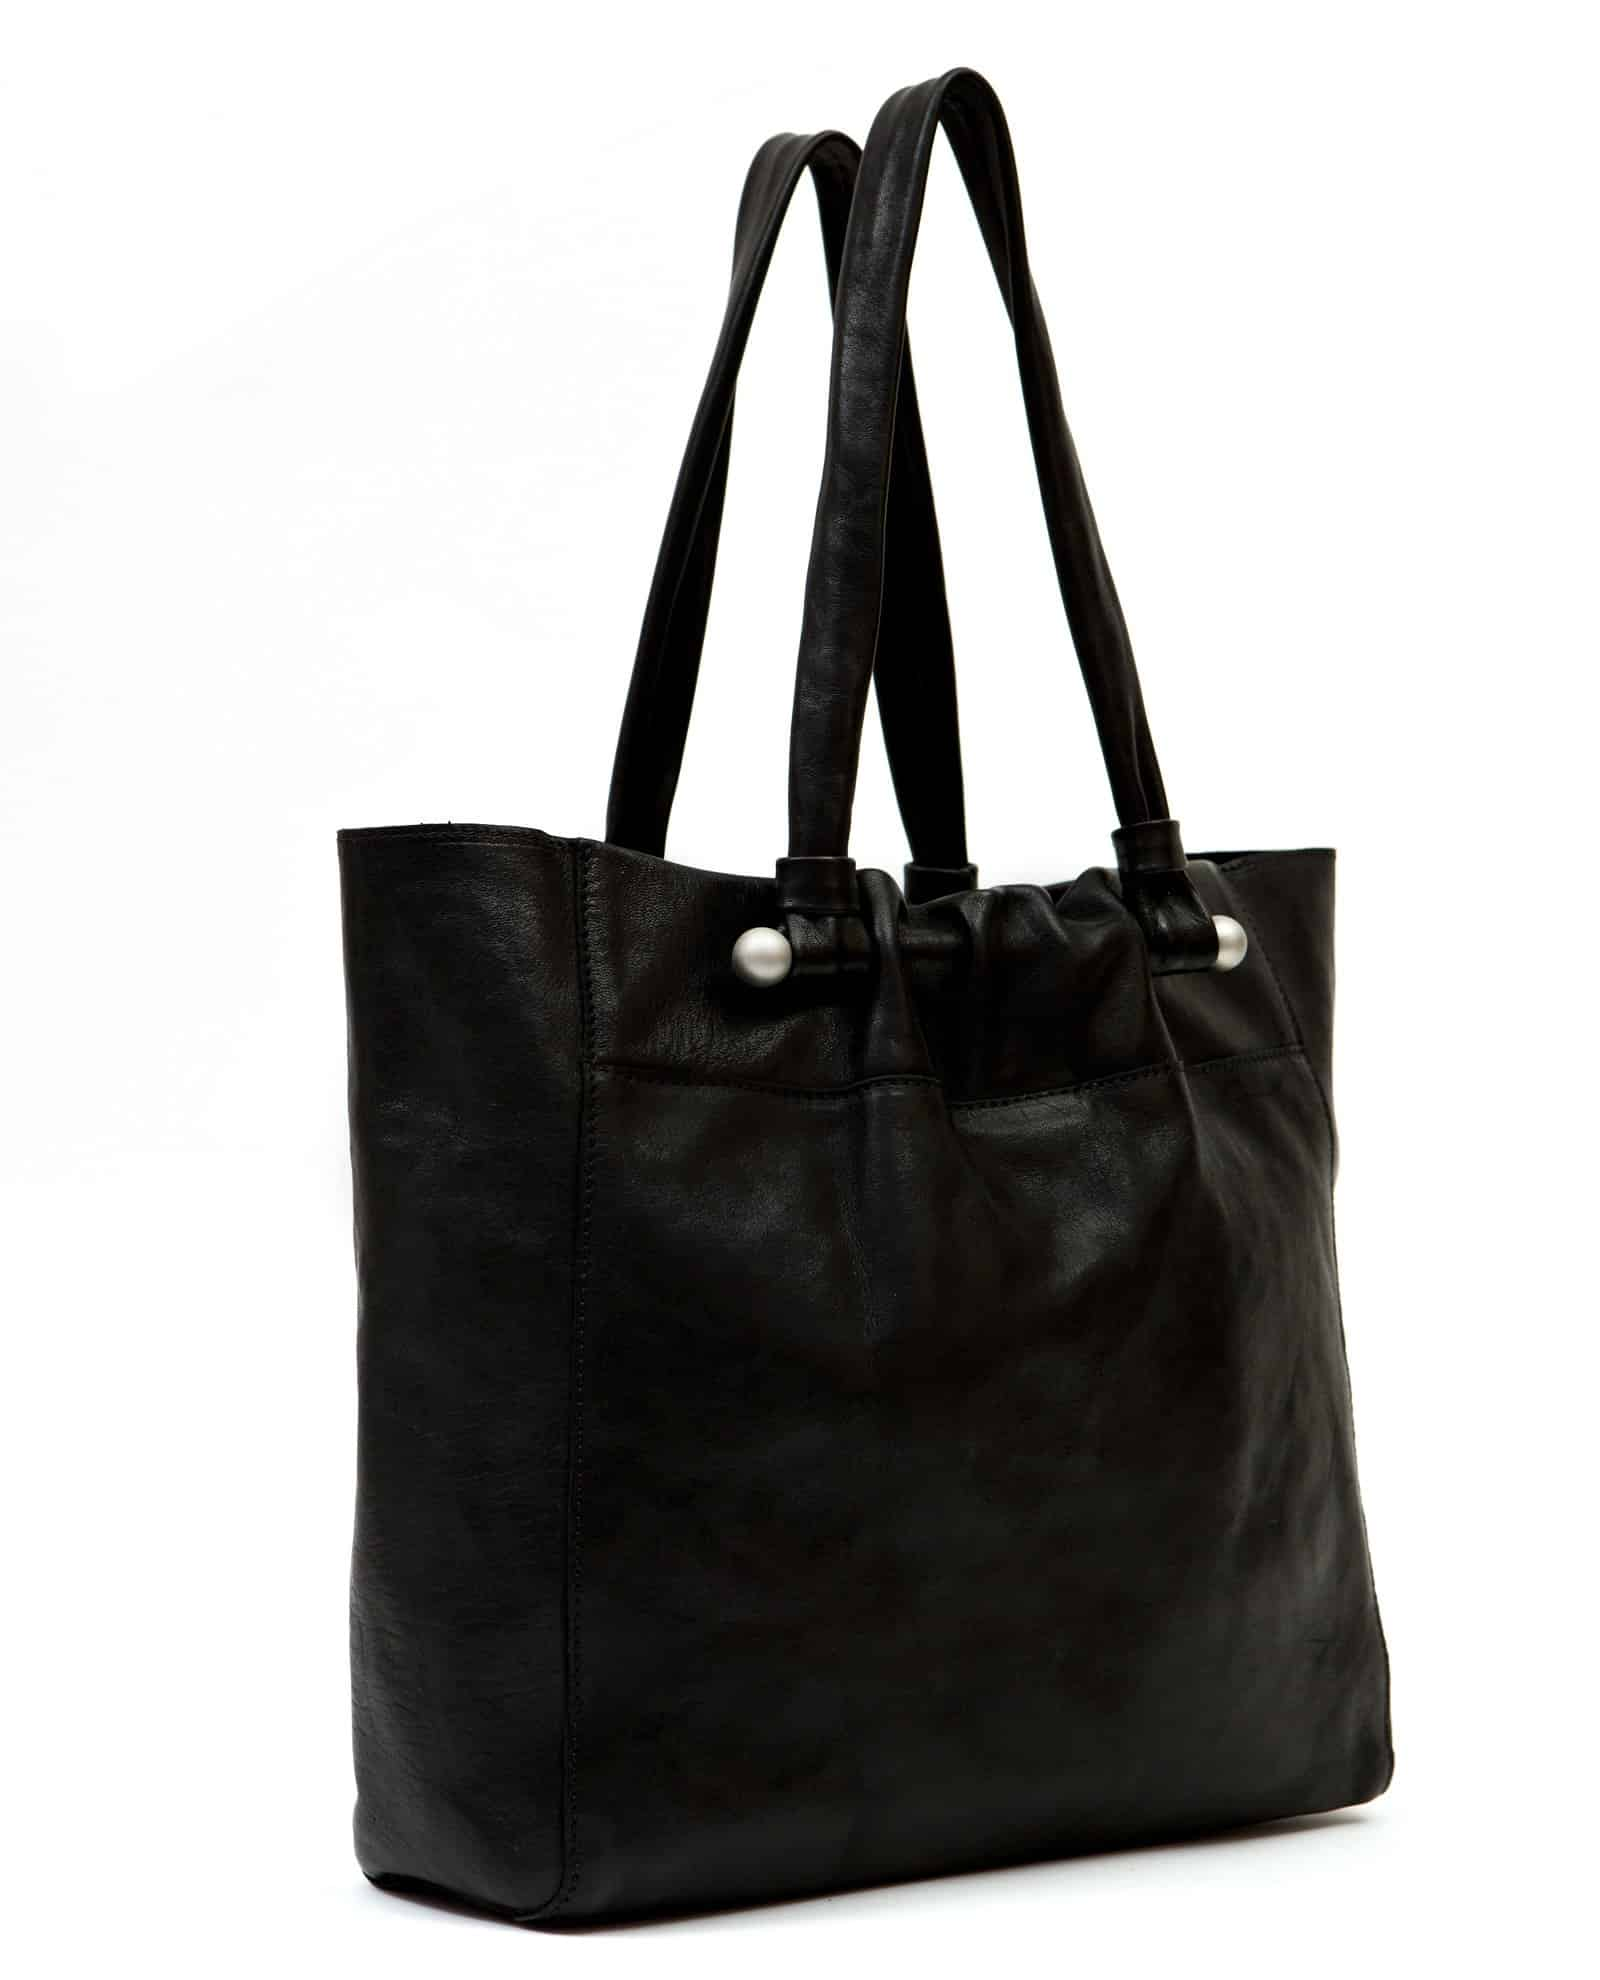 Tote bag, Nina black (ref #NPT-04) Petty Things – side